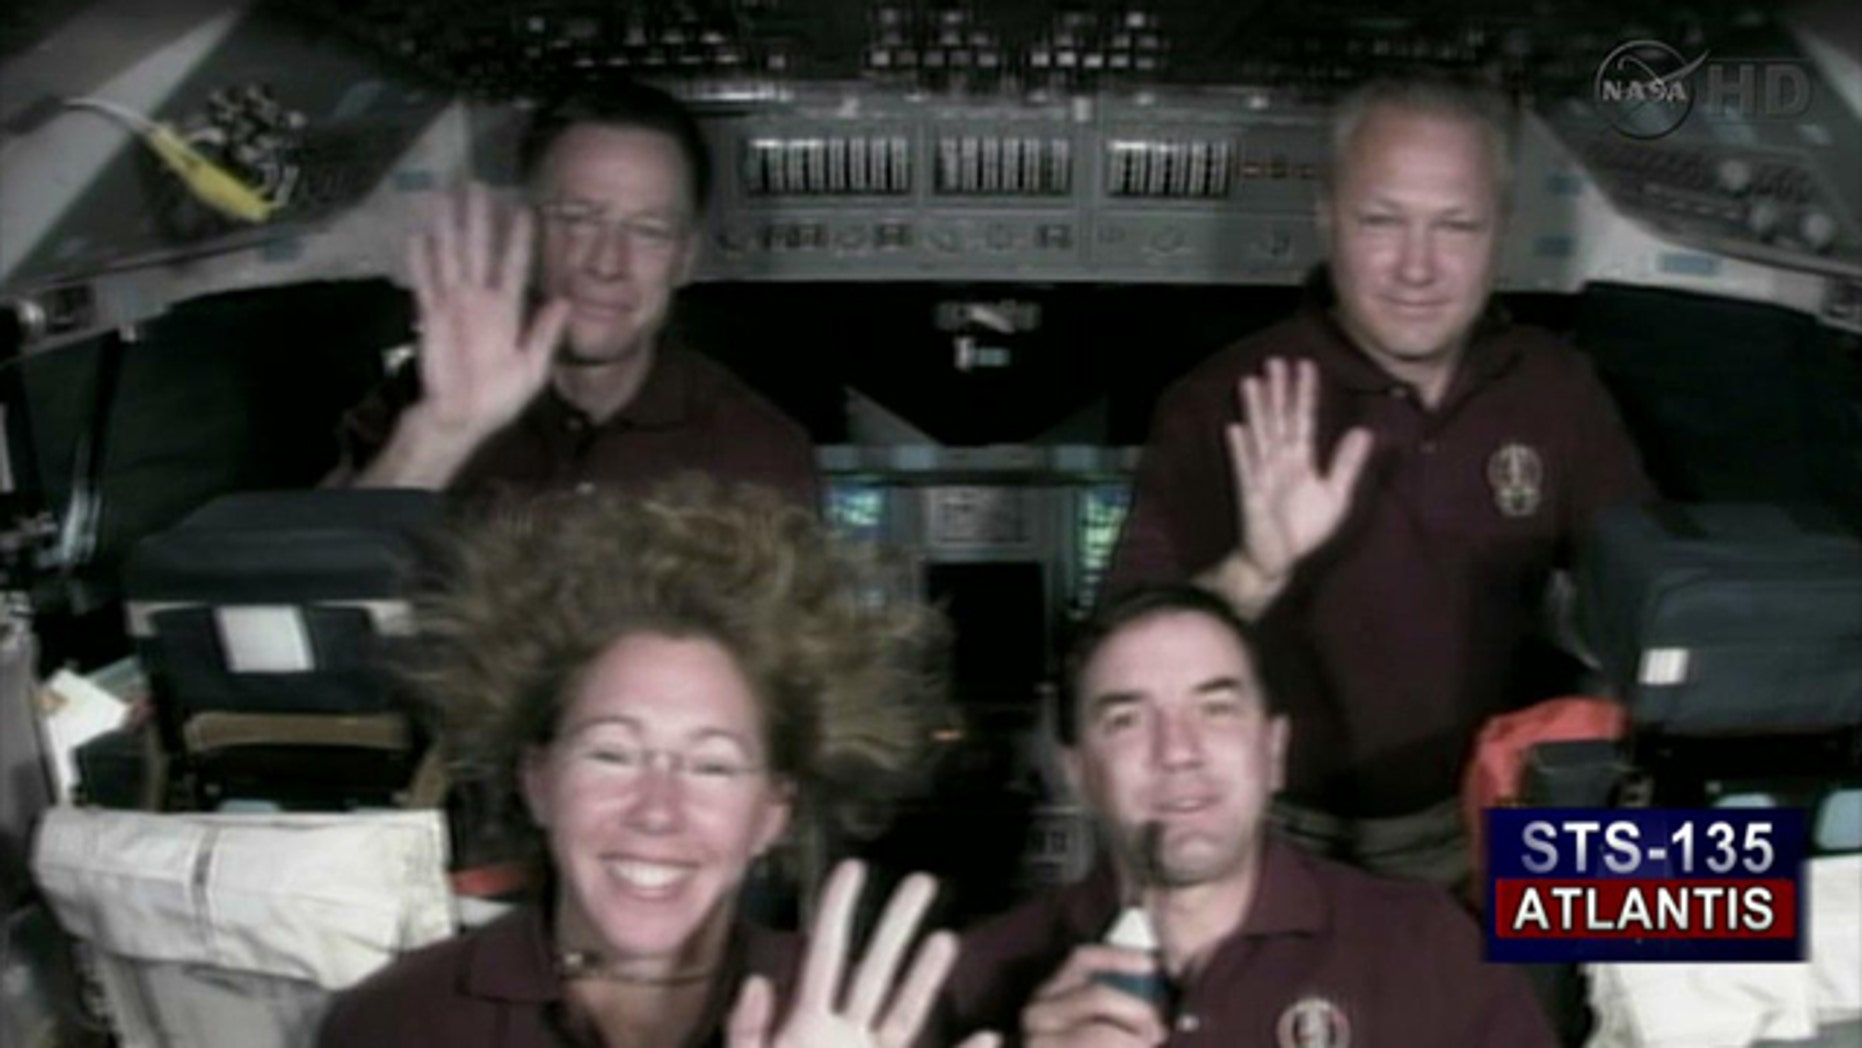 The Final Shuttle Crew (from top left to bottom right): Shuttle Commander Chris Ferguson, Pilot Doug Hurley, Specialist Sandy Magnus, Specialist Rex Walheim